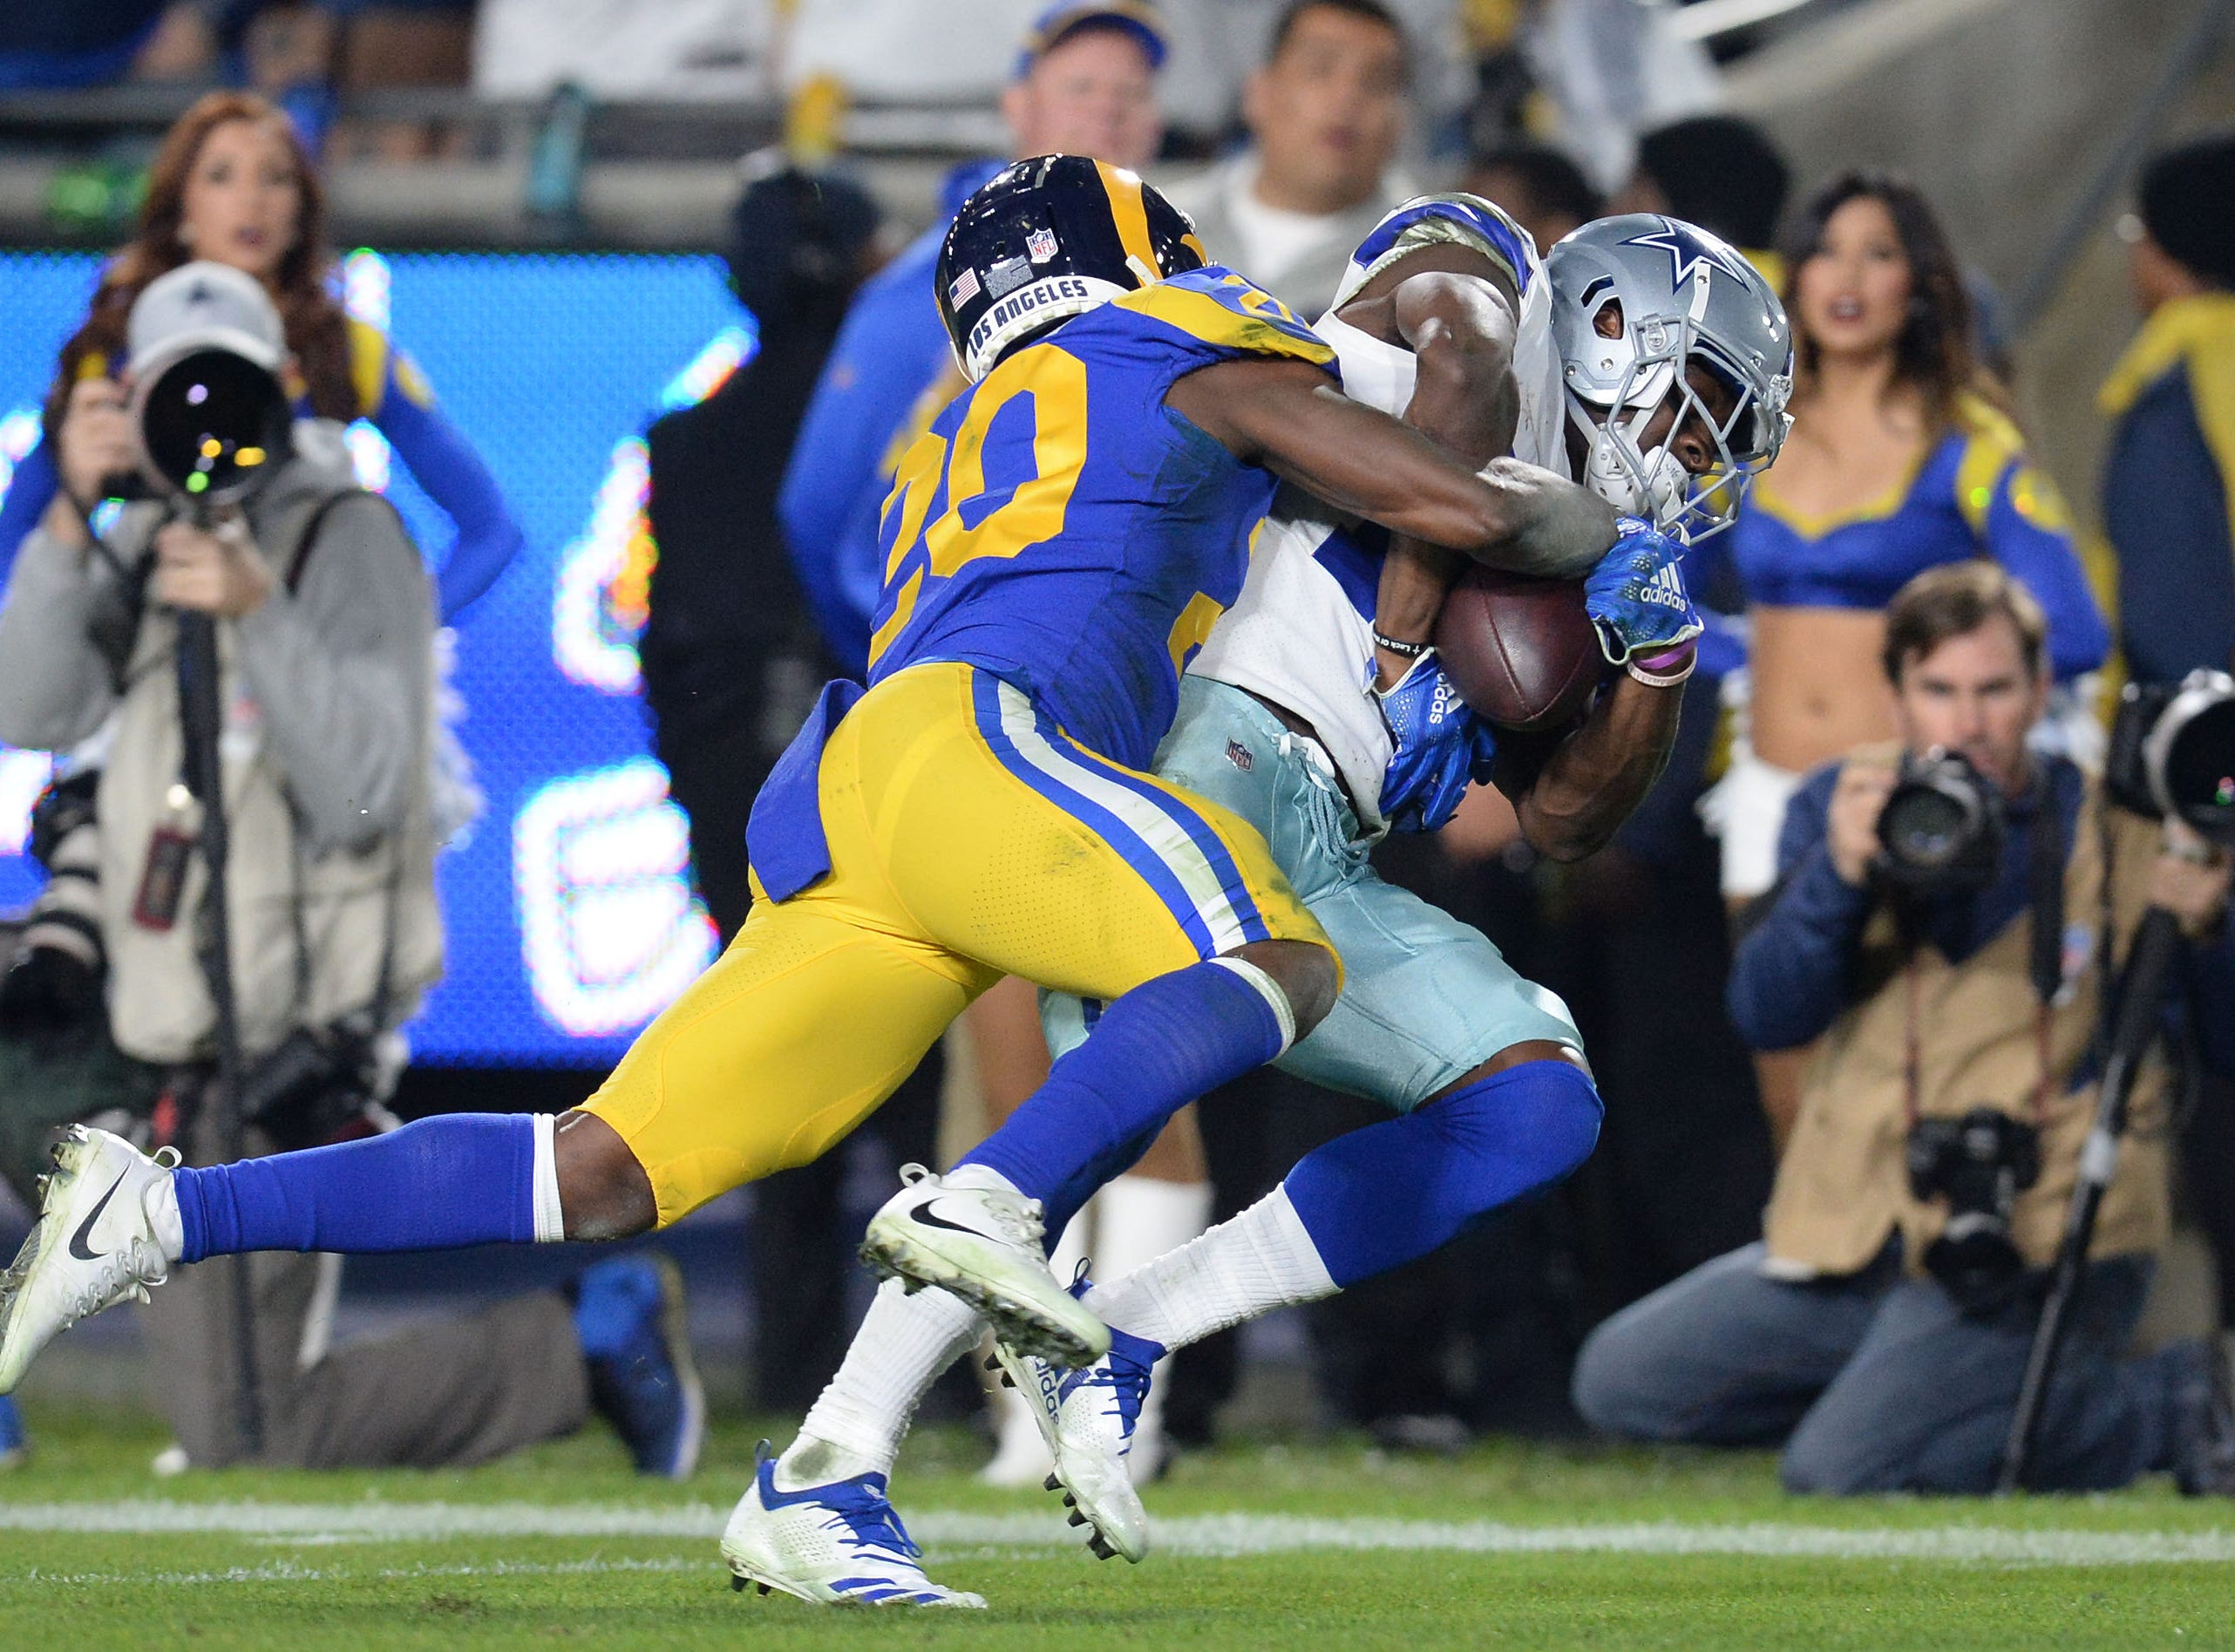 Jan 12, 2019; Los Angeles, CA, USA; Dallas Cowboys wide receiver Michael Gallup (13) makes a catch against Los Angeles Rams free safety Lamarcus Joyner (20) in the third quarter in a NFC Divisional playoff football game at Los Angeles Memorial Coliseum. Mandatory Credit: Gary A. Vasquez-USA TODAY Sports